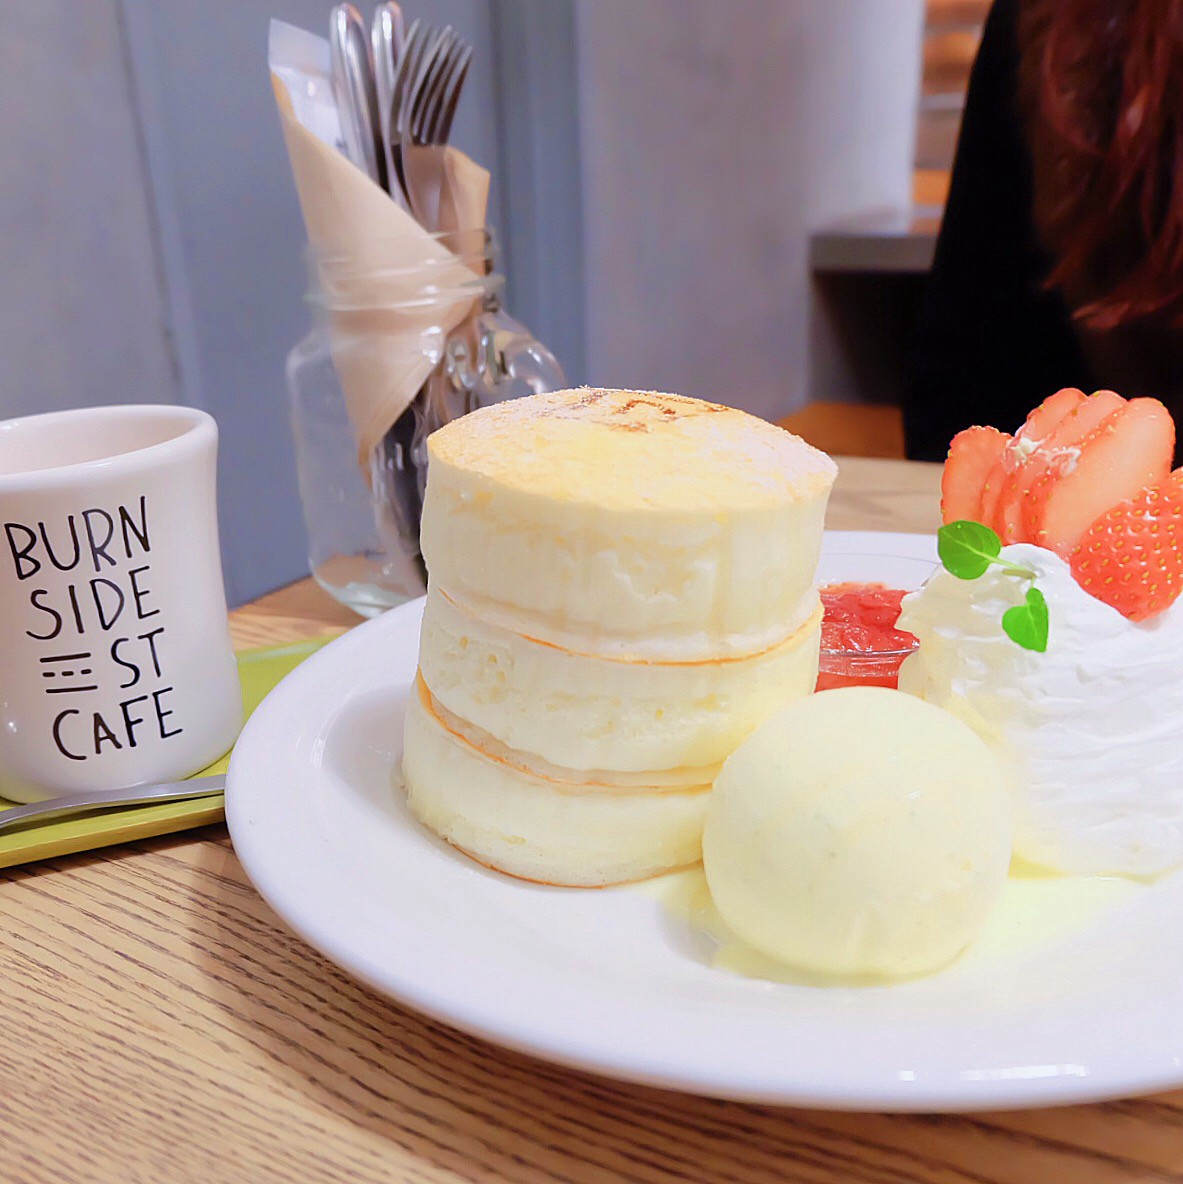 Delicious and photo-worthy pancakes in Shibuya's cafe